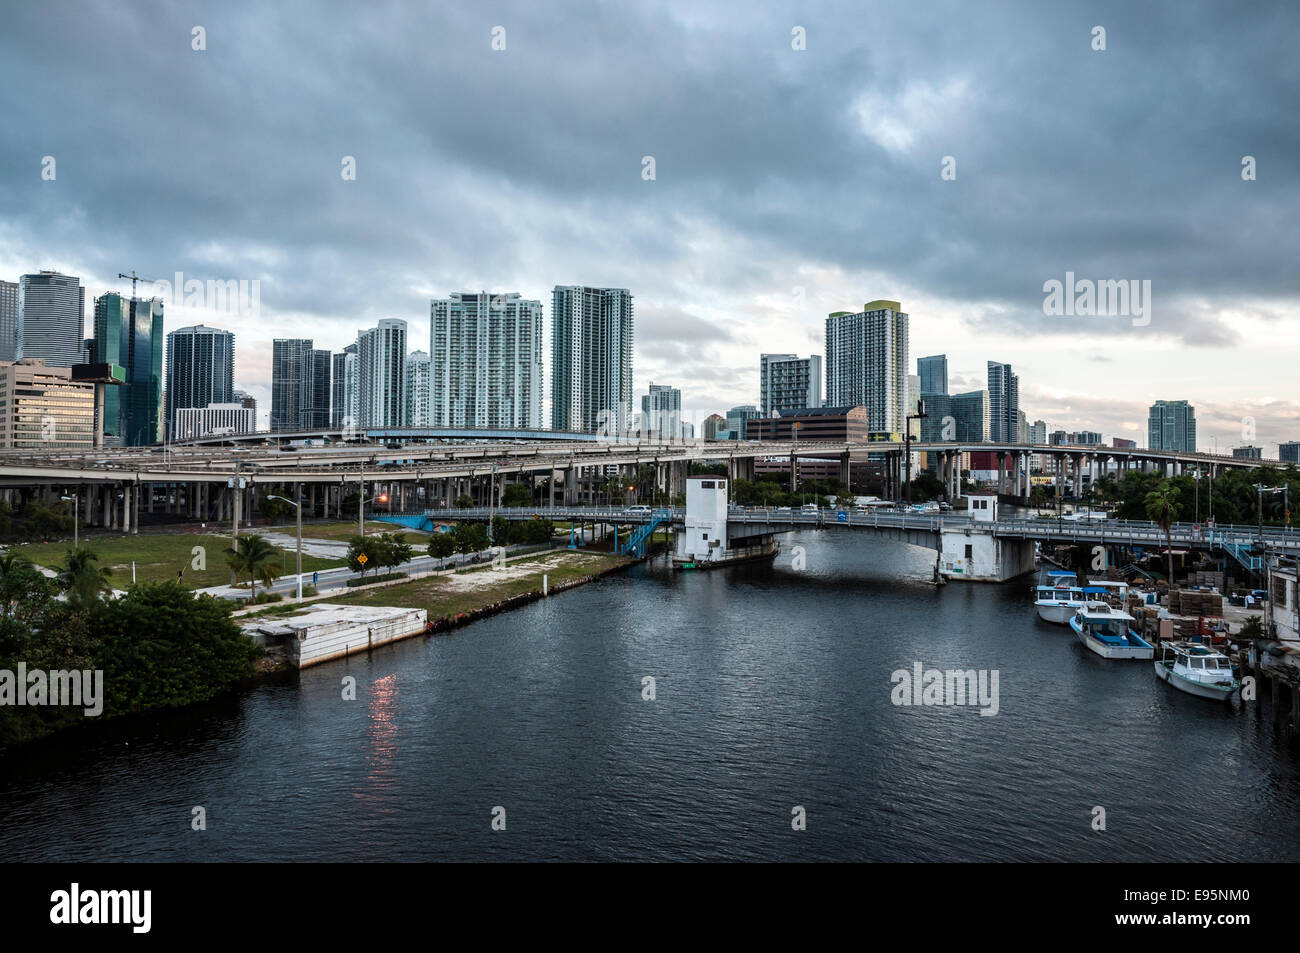 River and Miami downtown on a overcast day. Florida, USA - Stock Image